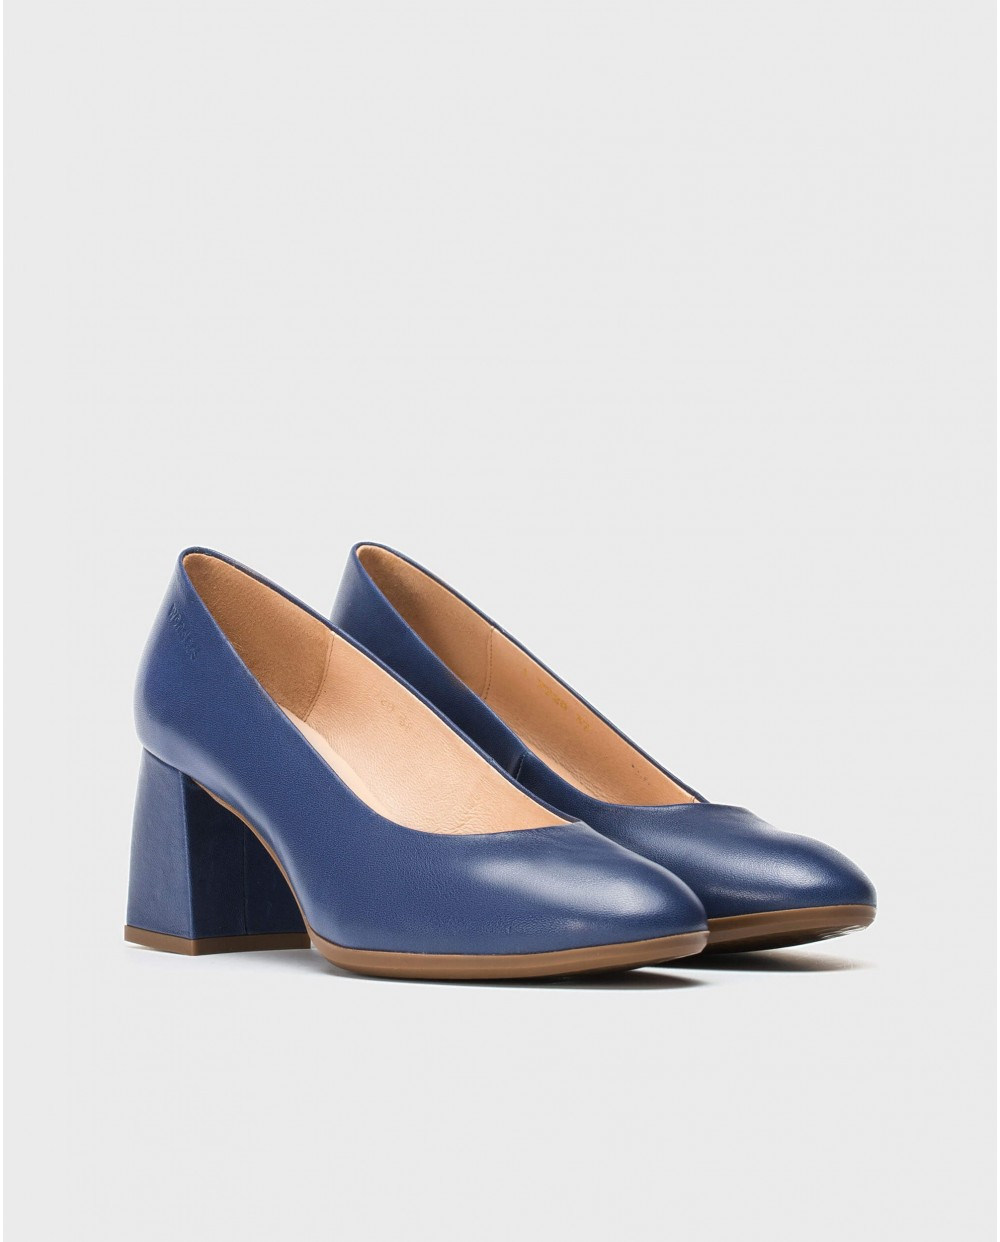 Wonders-Heels-High heeled leather Court shoe